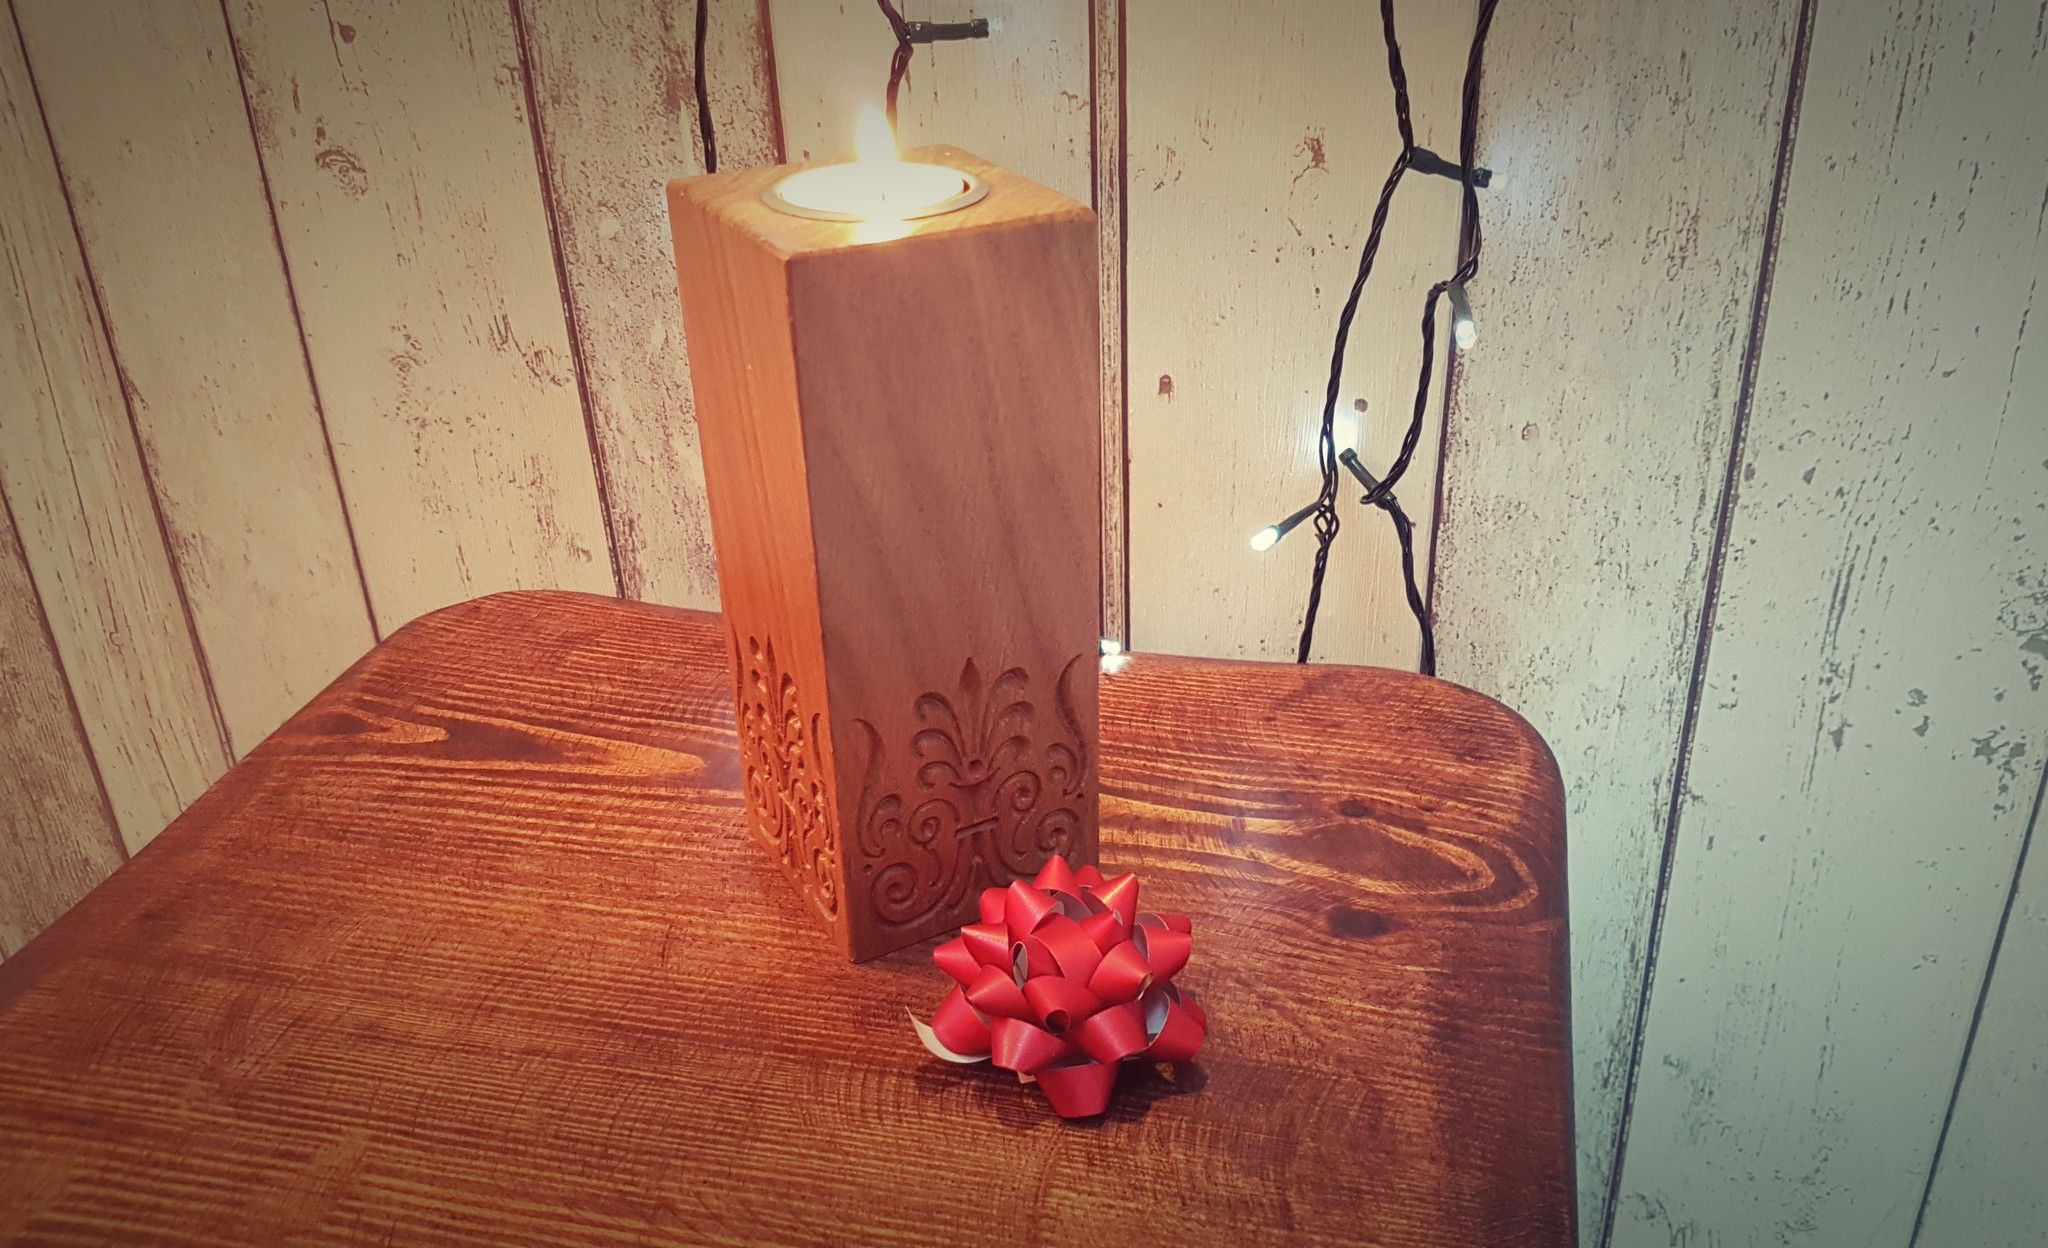 Beautifully crafted Solid Oak Engraved Rectangular Tea Light Holders from Bramble Signs